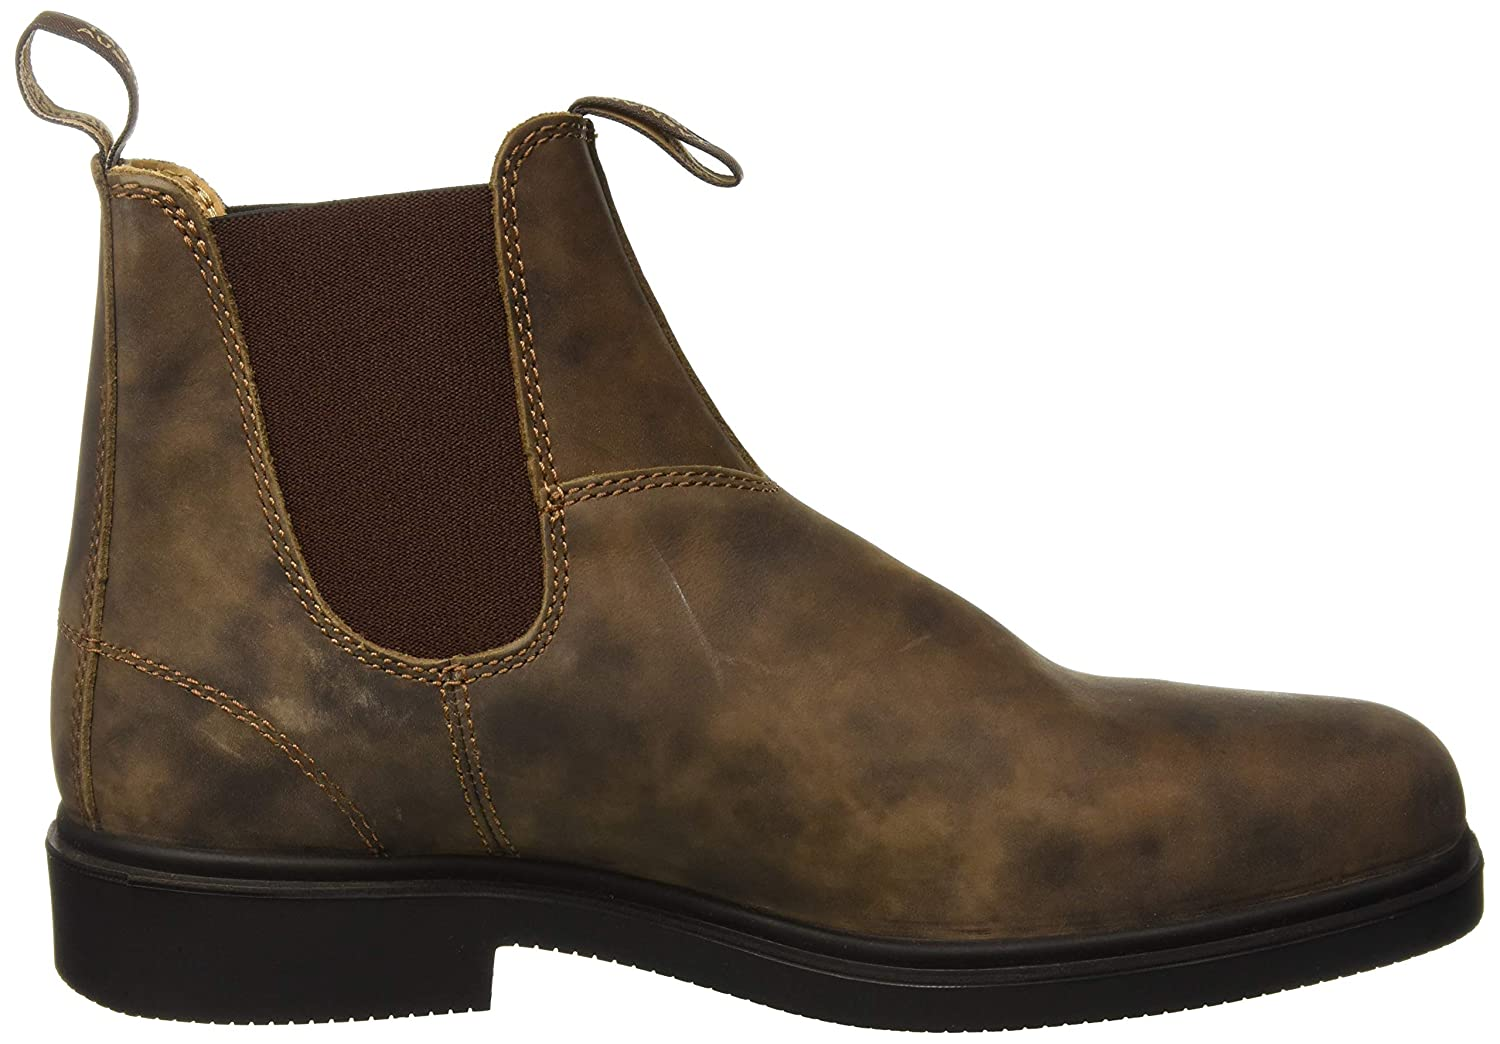 BLUNDSTONE Chisel Toe, Botas Unisex Adulto, Marrón (Rustic Brown),: Amazon.es: Zapatos y complementos